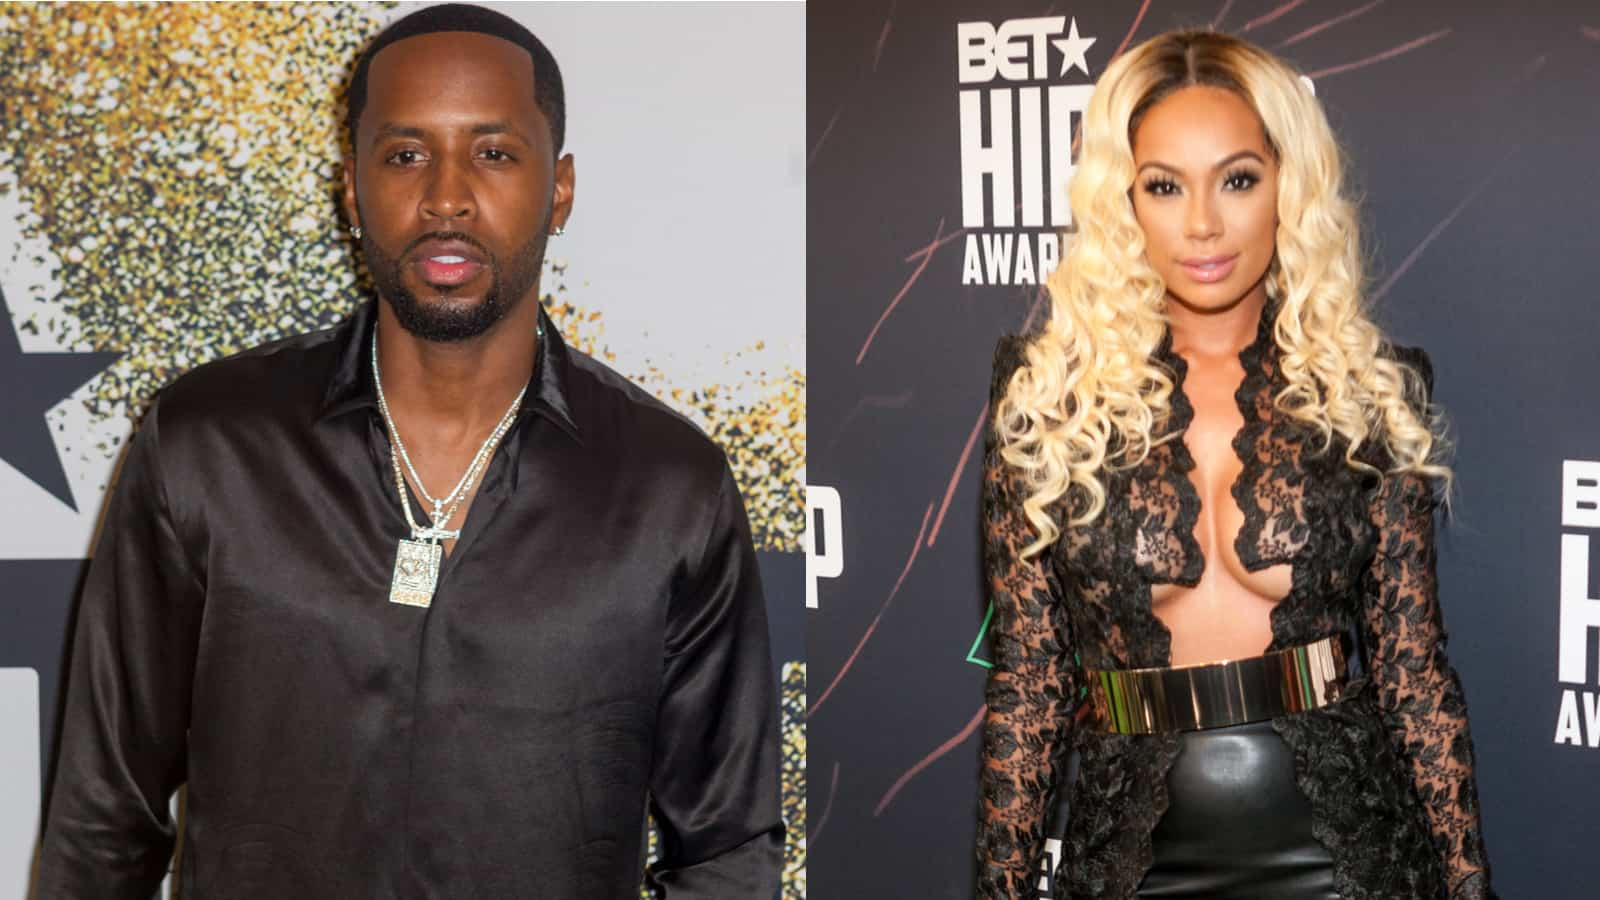 Safaree Says Love Outweighs Anything Else - Watch His Latest IG Video